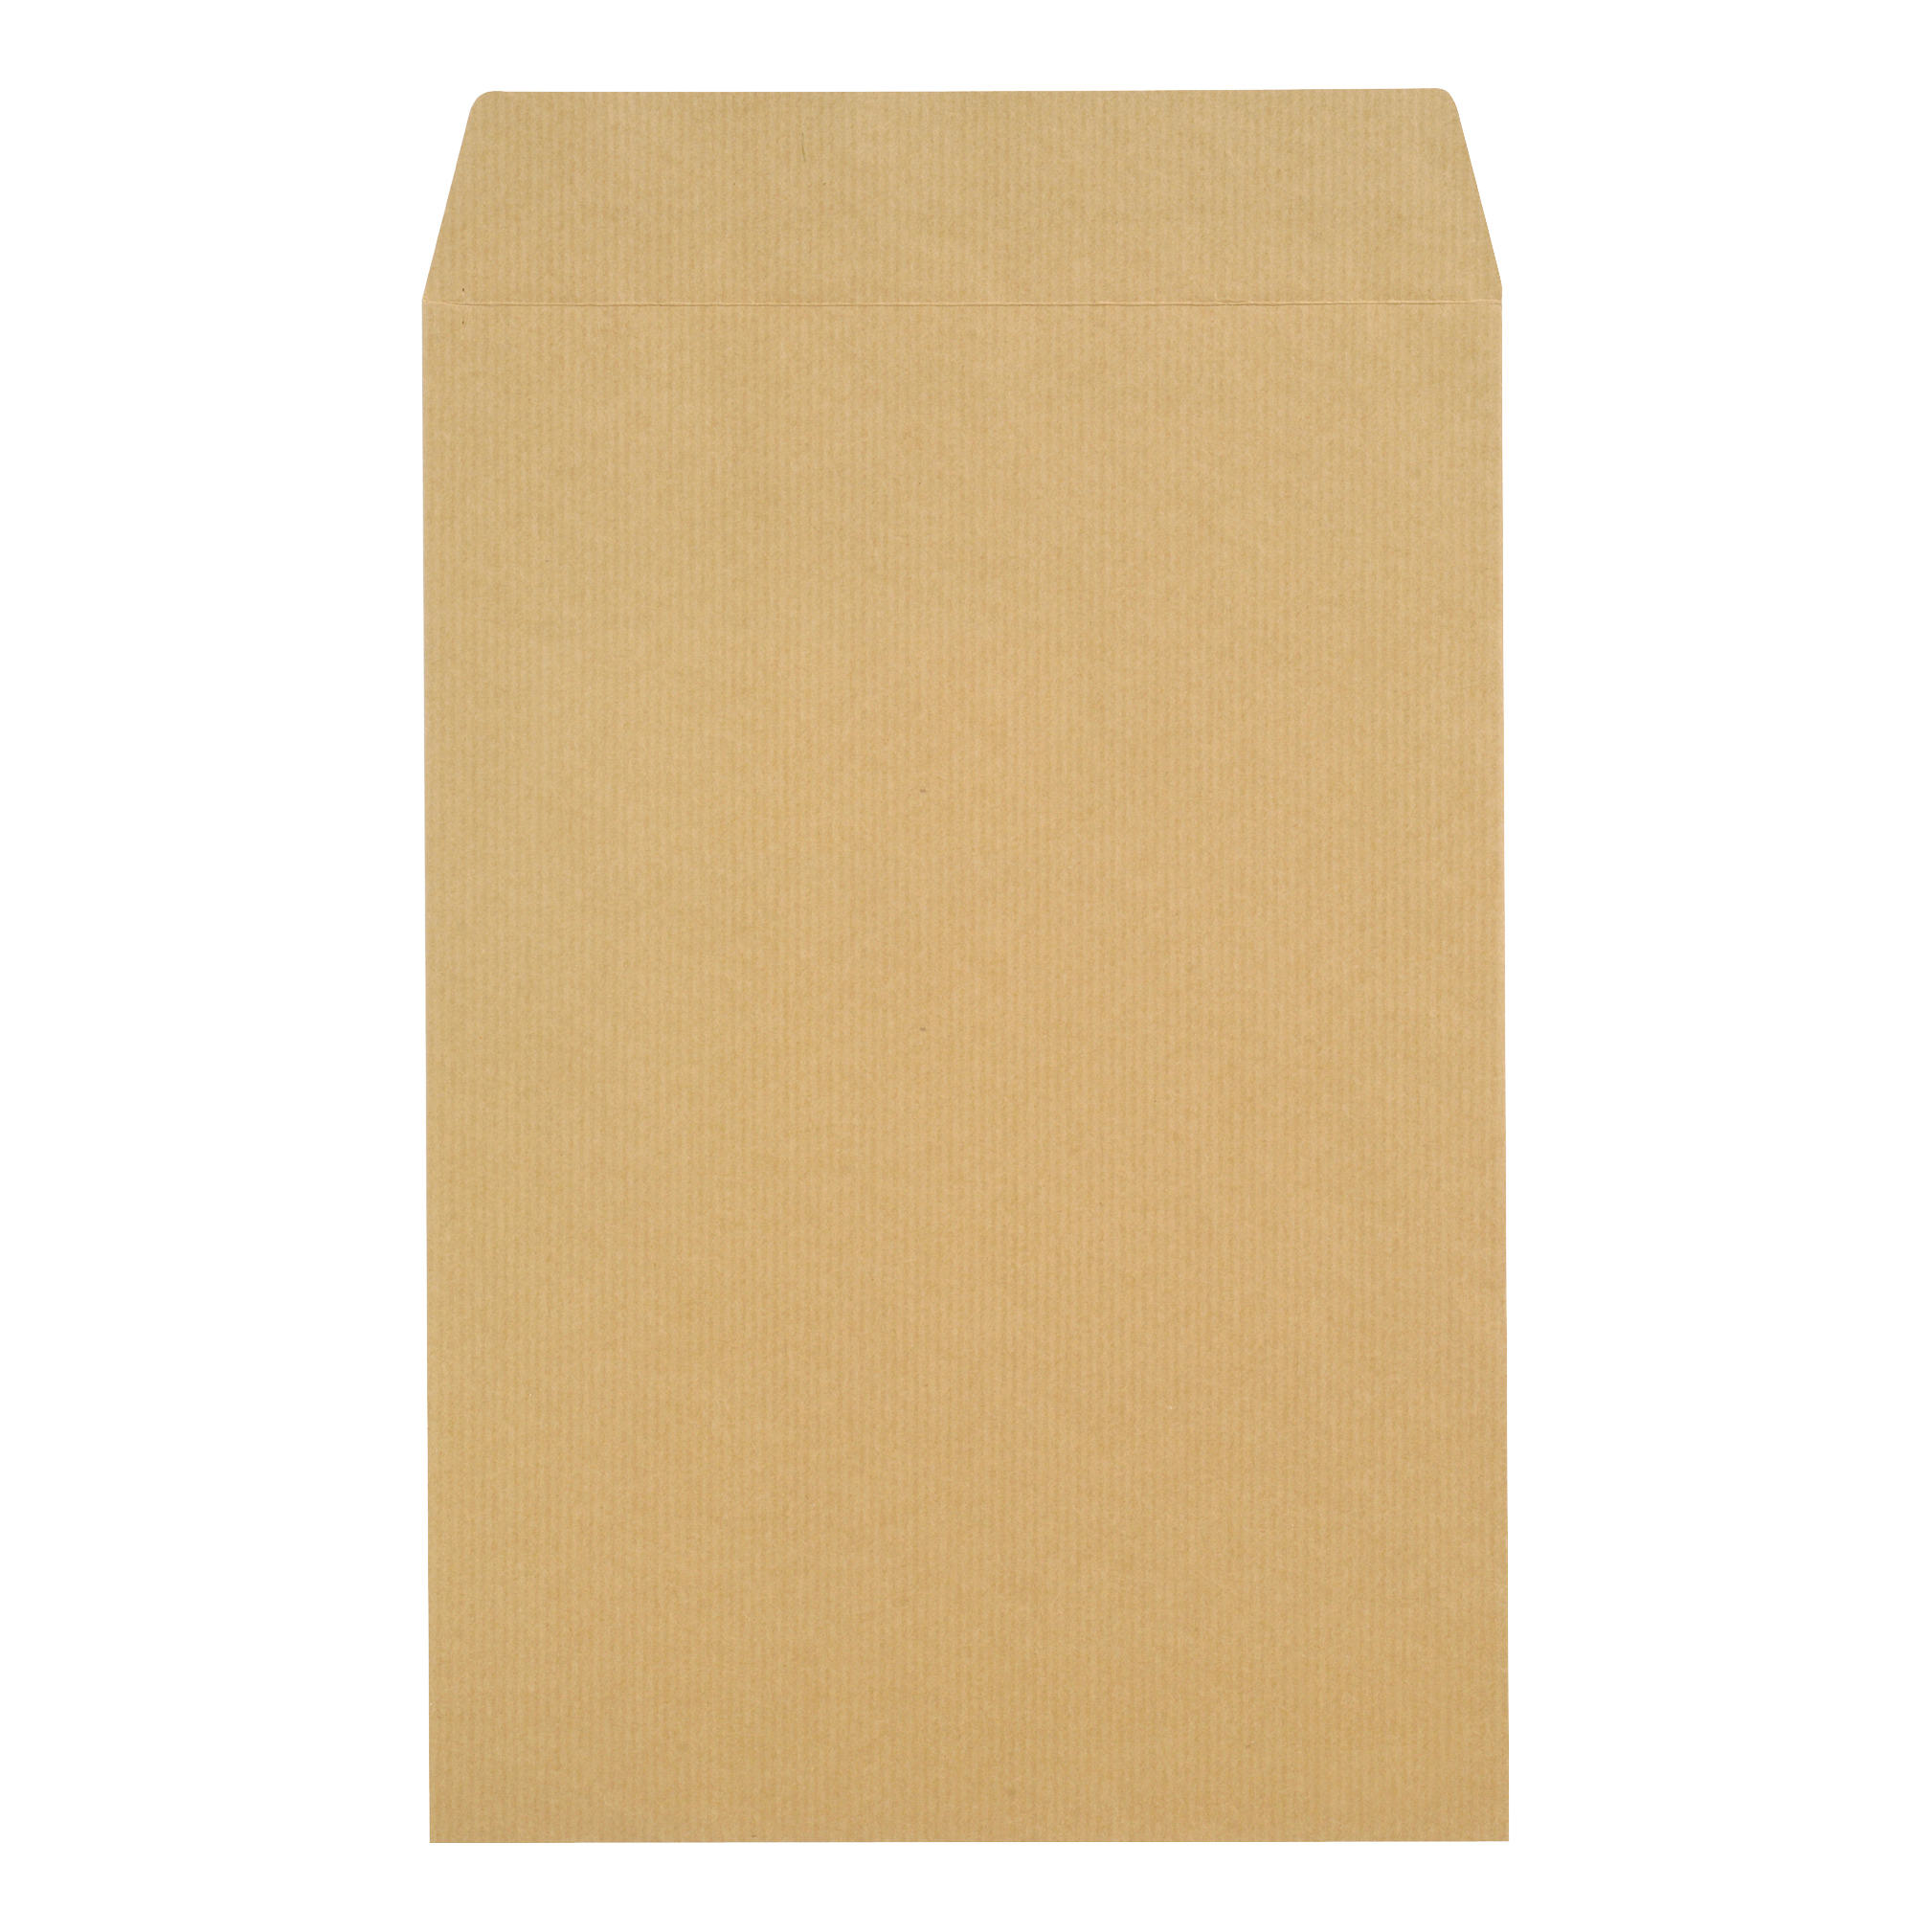 New Guardian Envelopes Pocket Self Seal 130gsm C4 324x229mm Manilla Ref L26303 Pack 250